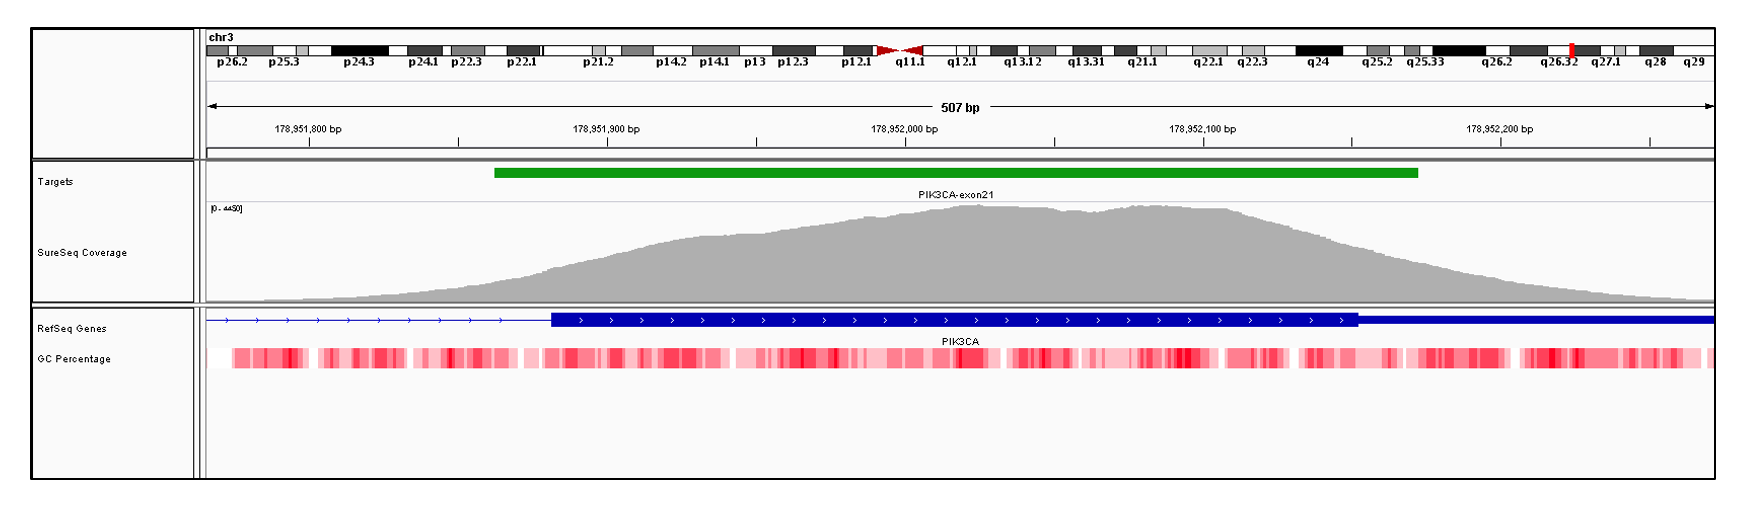 PIK3CA Exon 21 (hg19 chr3:178951882-178952497). Depth of coverage per base (grey). Targeted region (green). Gene coding region as defined by RefSeq (blue). GC percentage (red). Image